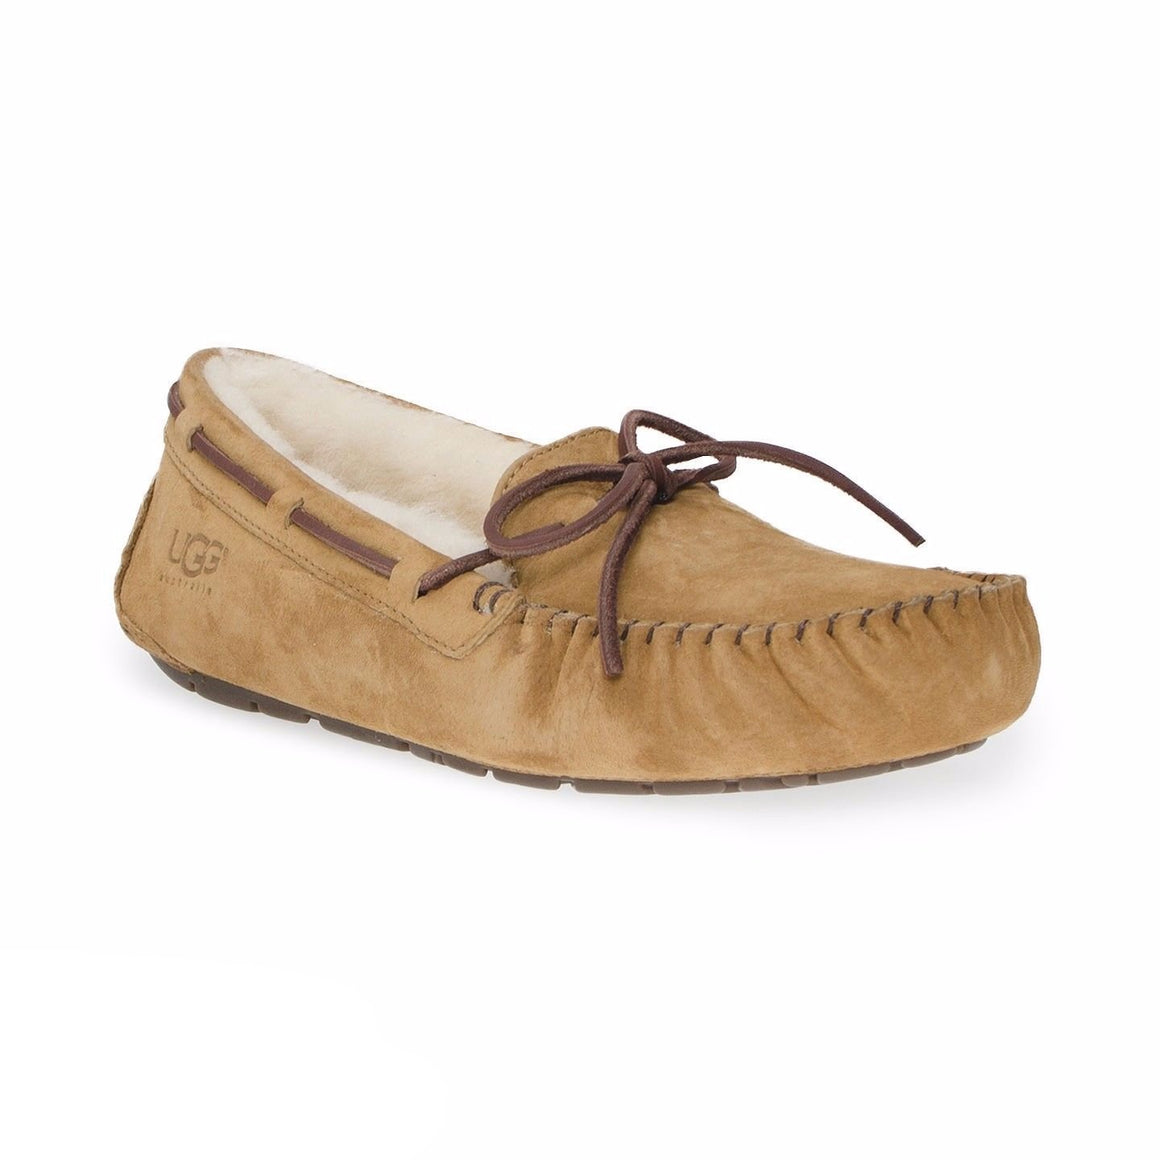 UGG Dakota Chestnut Shoes